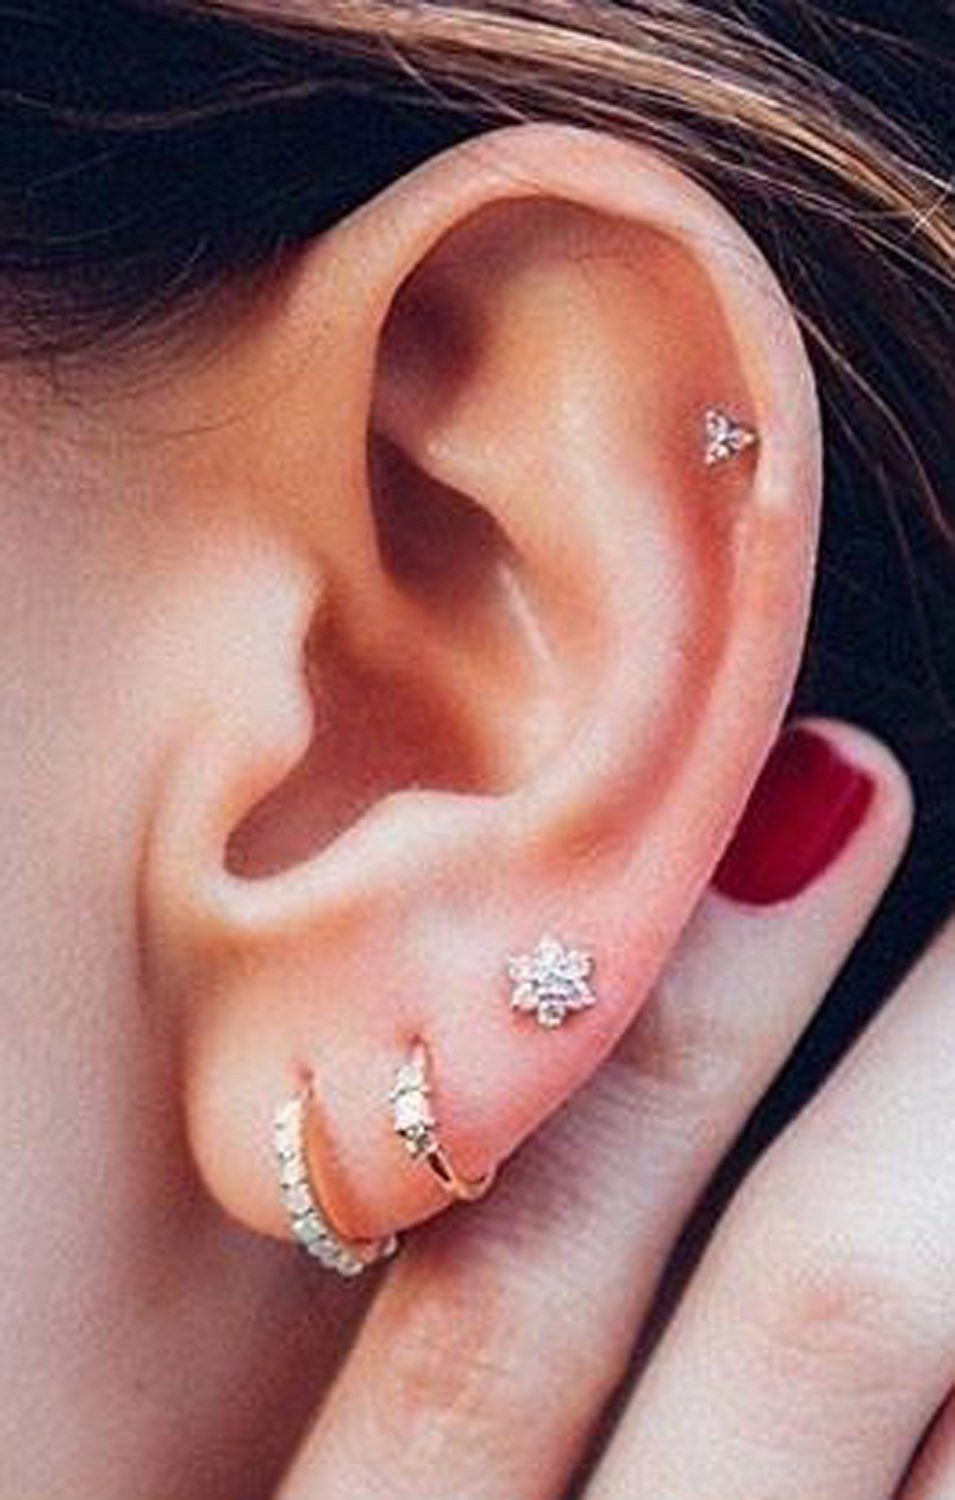 Steal These 30 Ear Piercing Ideas | Piercings | Pinterest ...